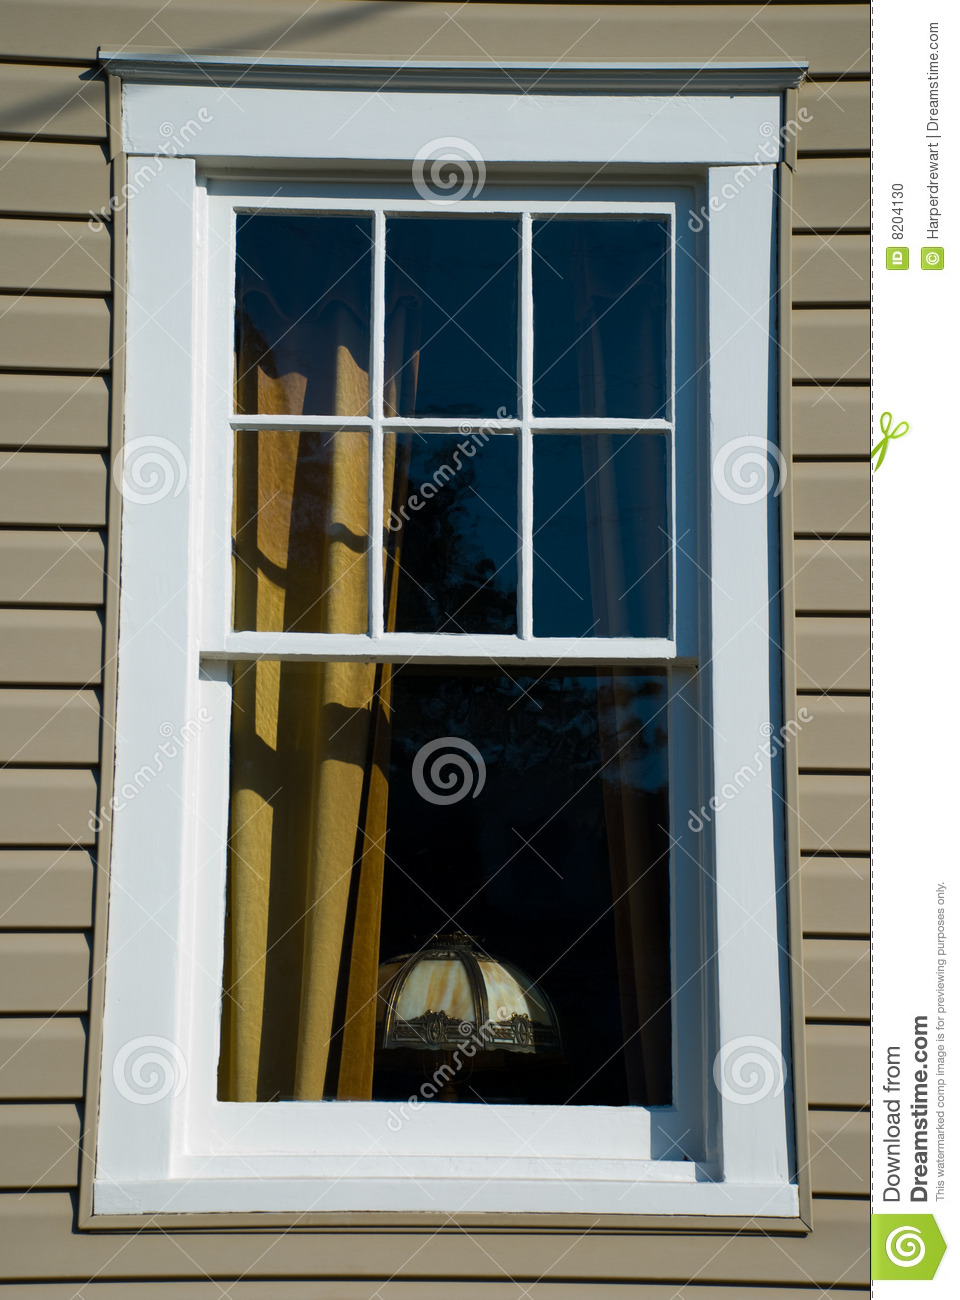 Elegant Window Stock Photo Image 8204130